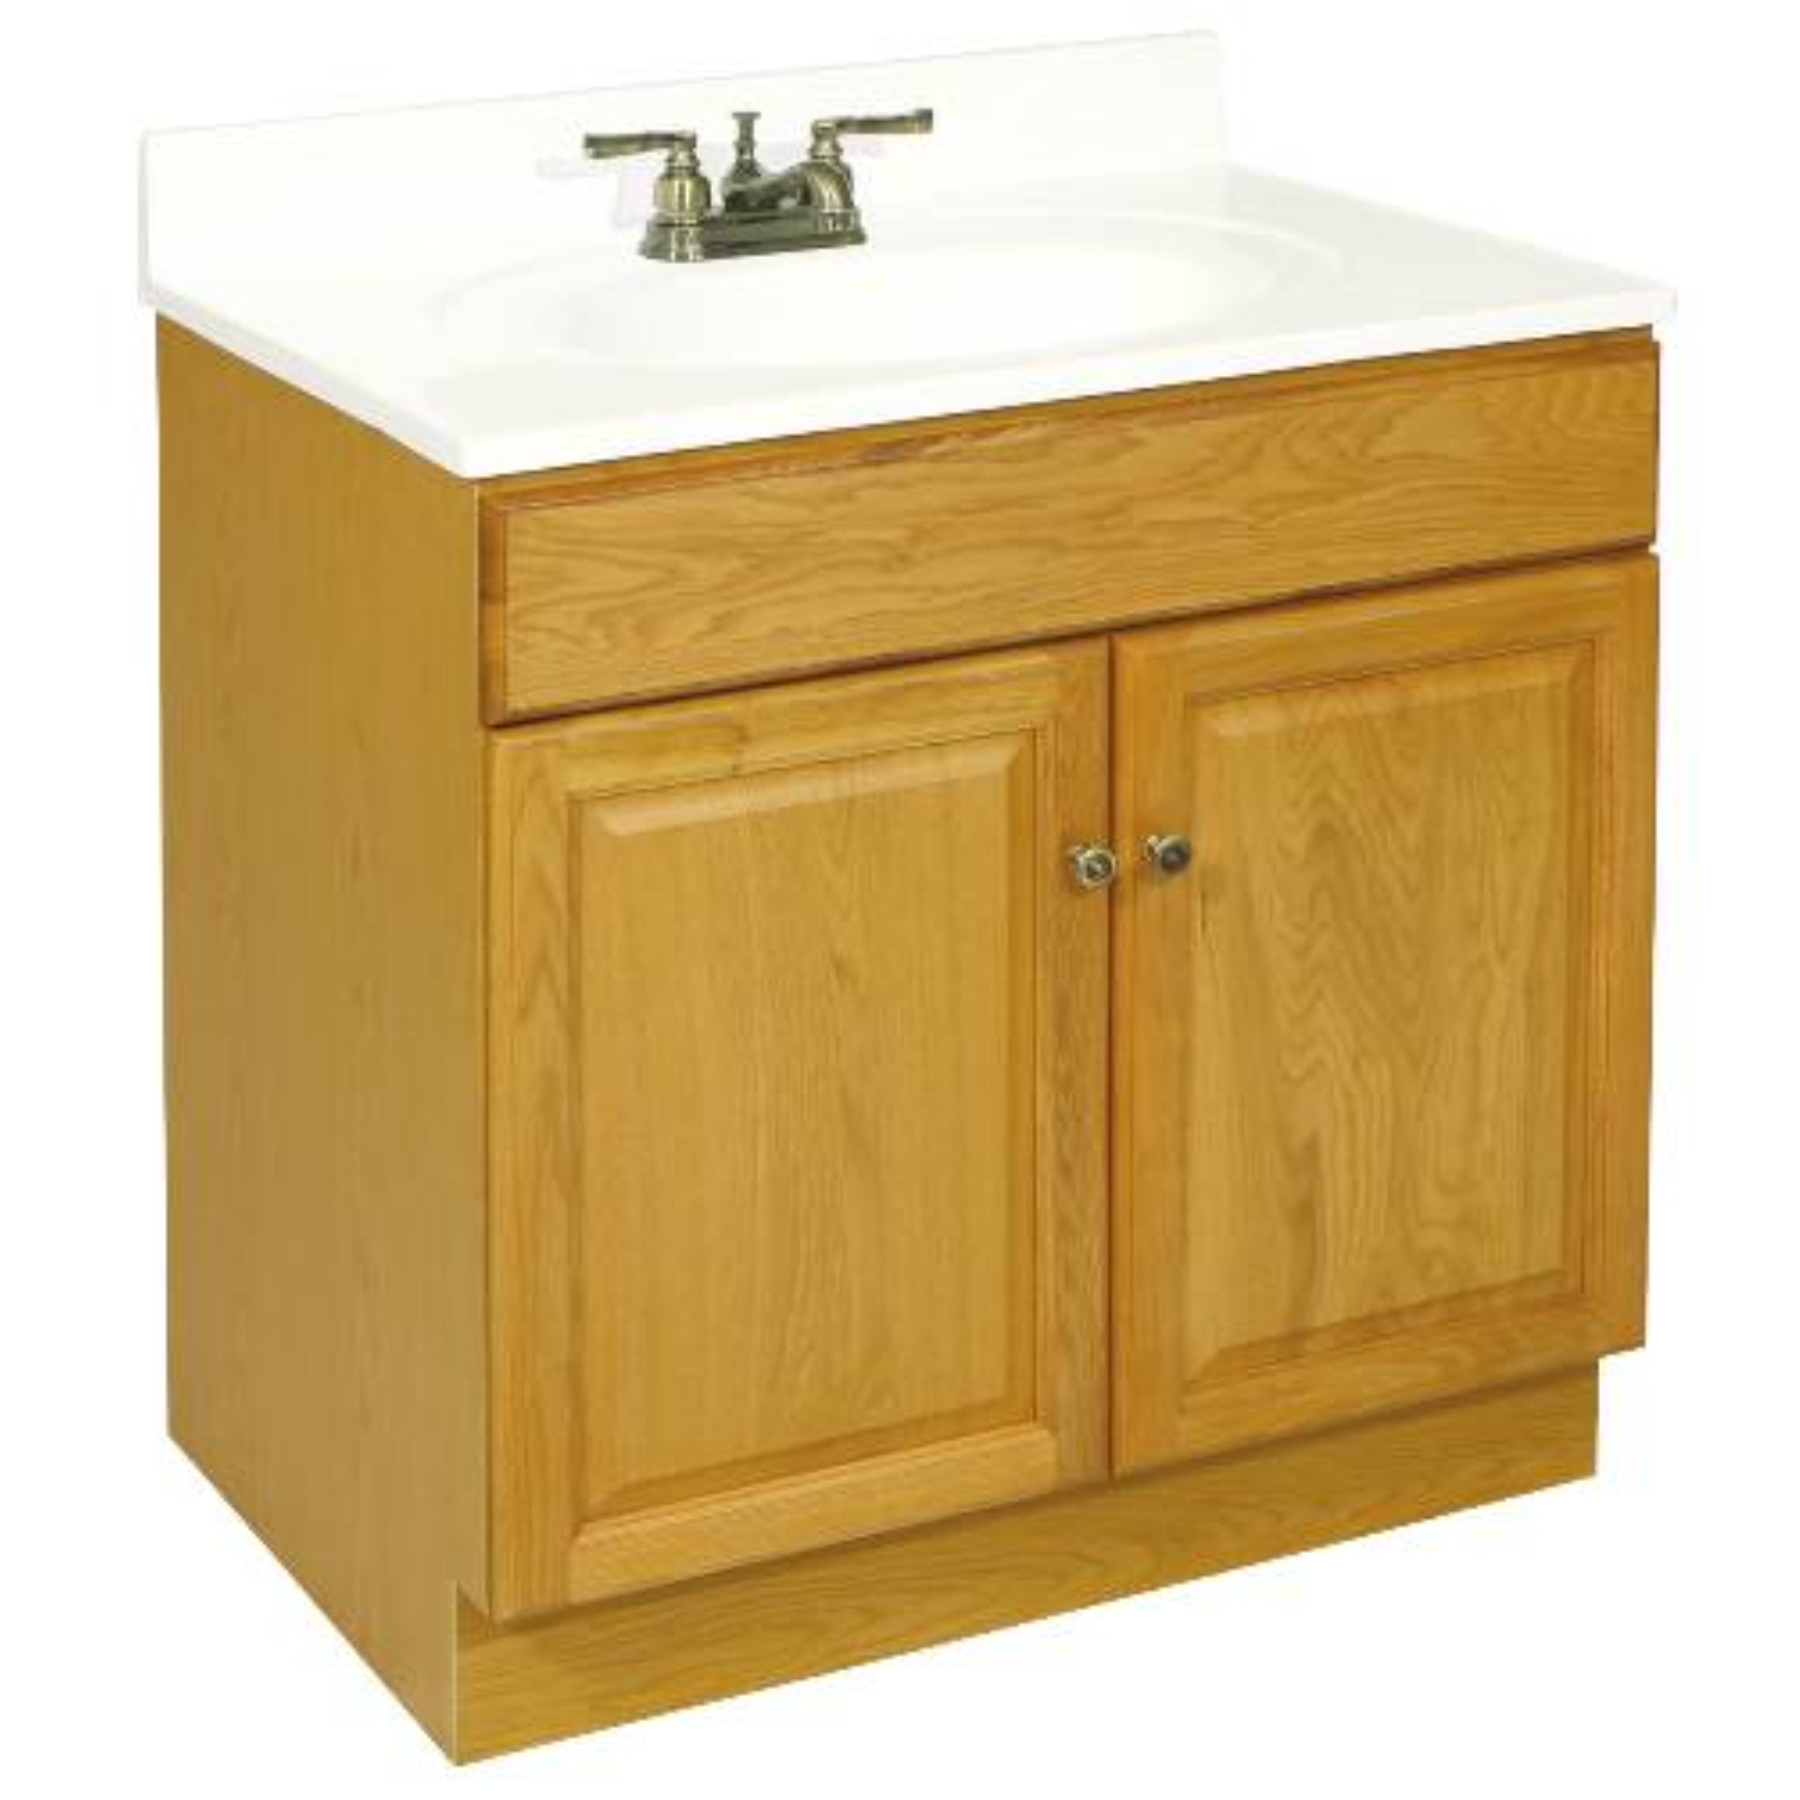 "24"" x 18.5"" Claremont Bathroom Vanity Cabinet, Ready To Assemble, 2 Door, Honey Oak"